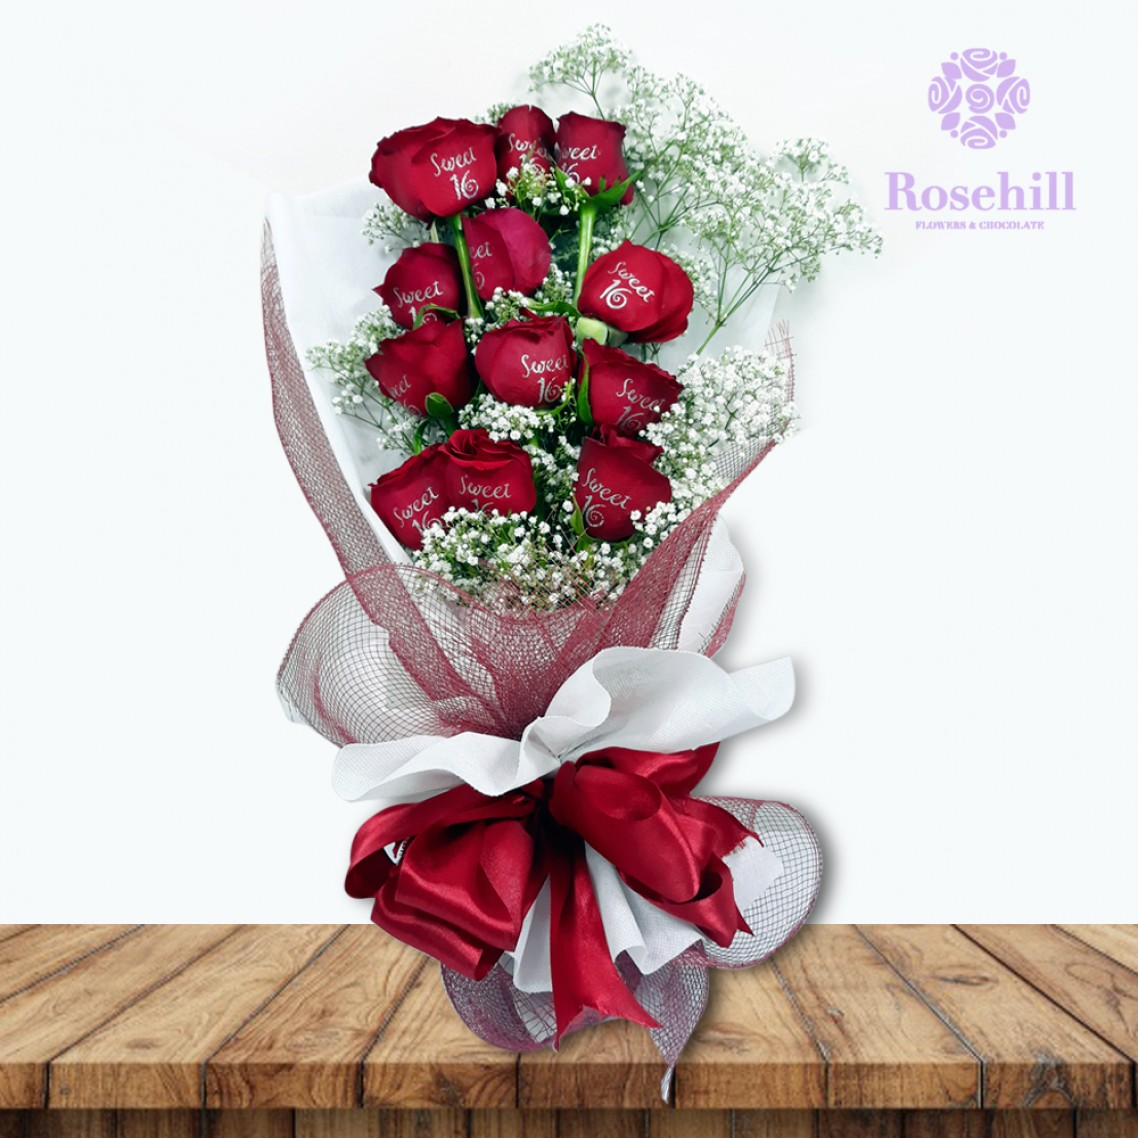 1524665240-h-250-Rosehill's Sweet 16 Bouquet with Baby's Breath- Red.jpg